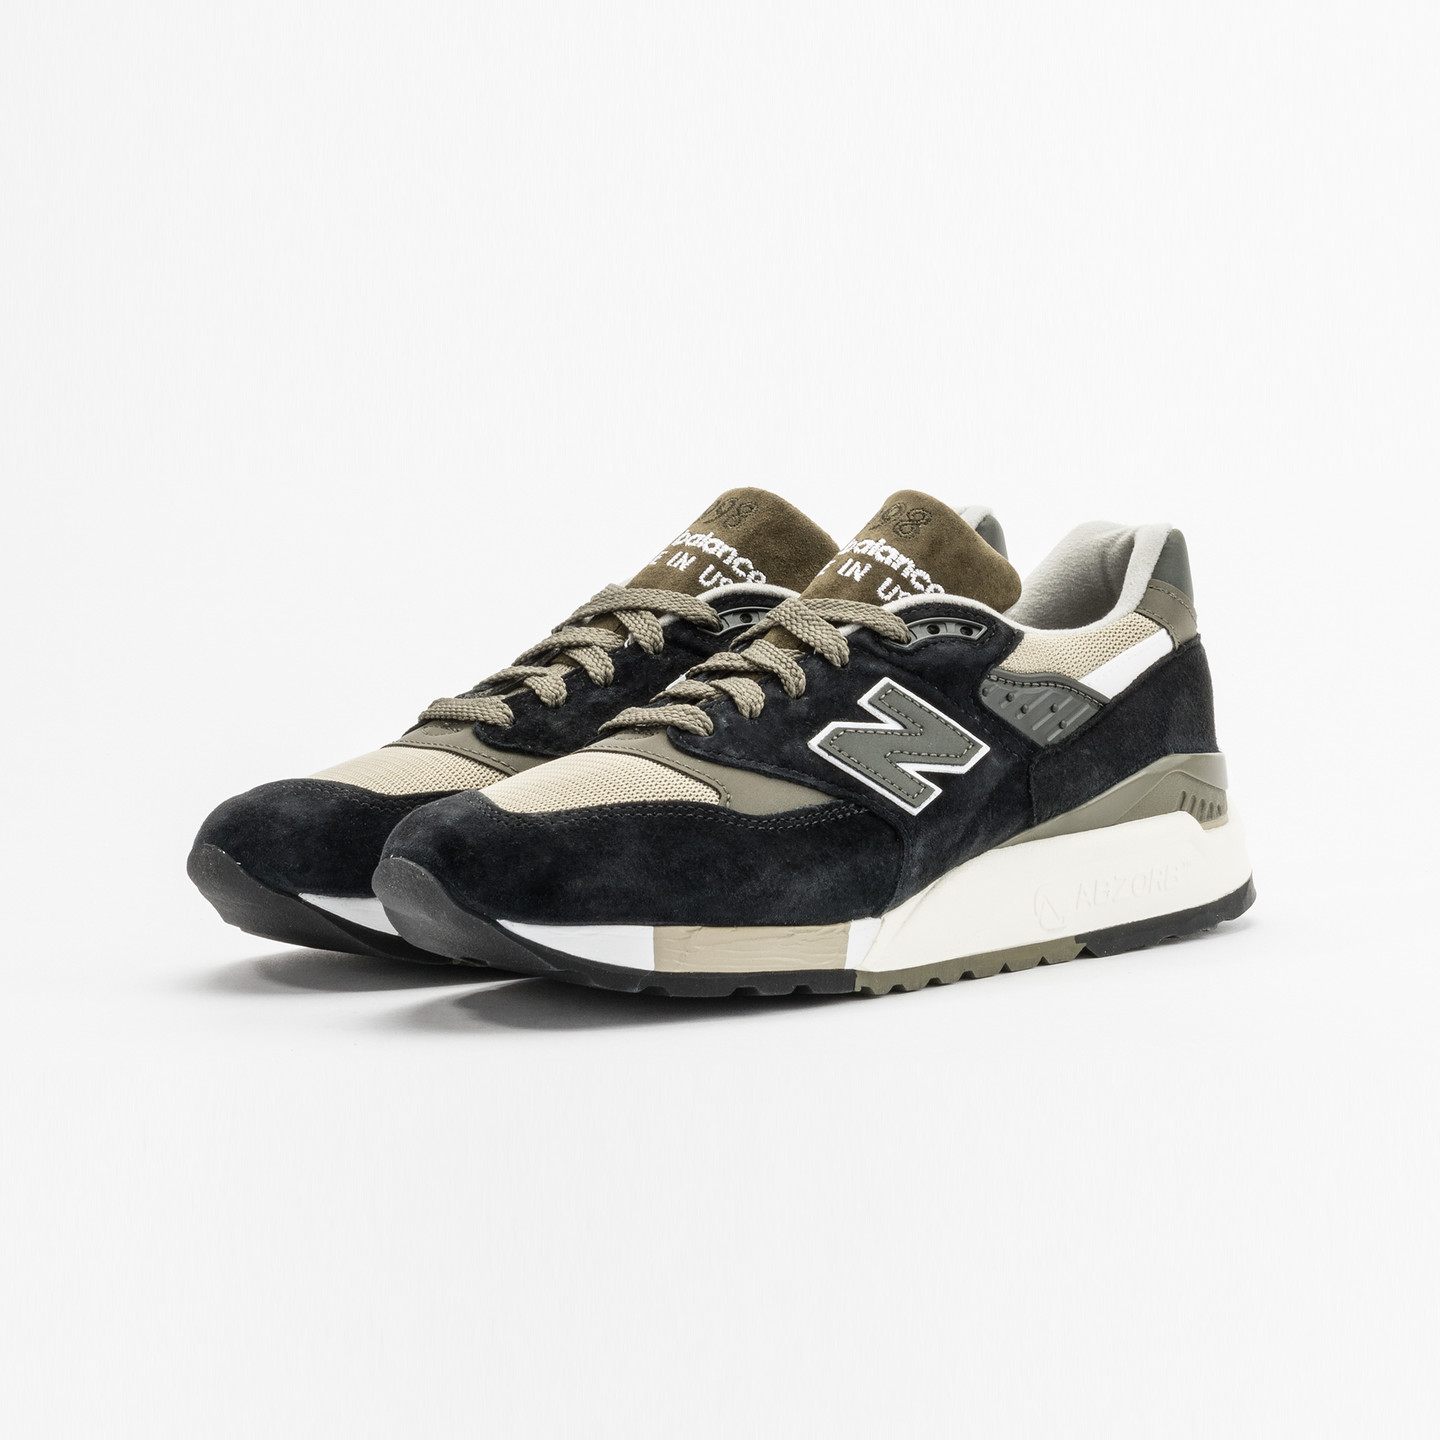 New Balance M998 Made in USA Olive / Black M998CTR-44.5